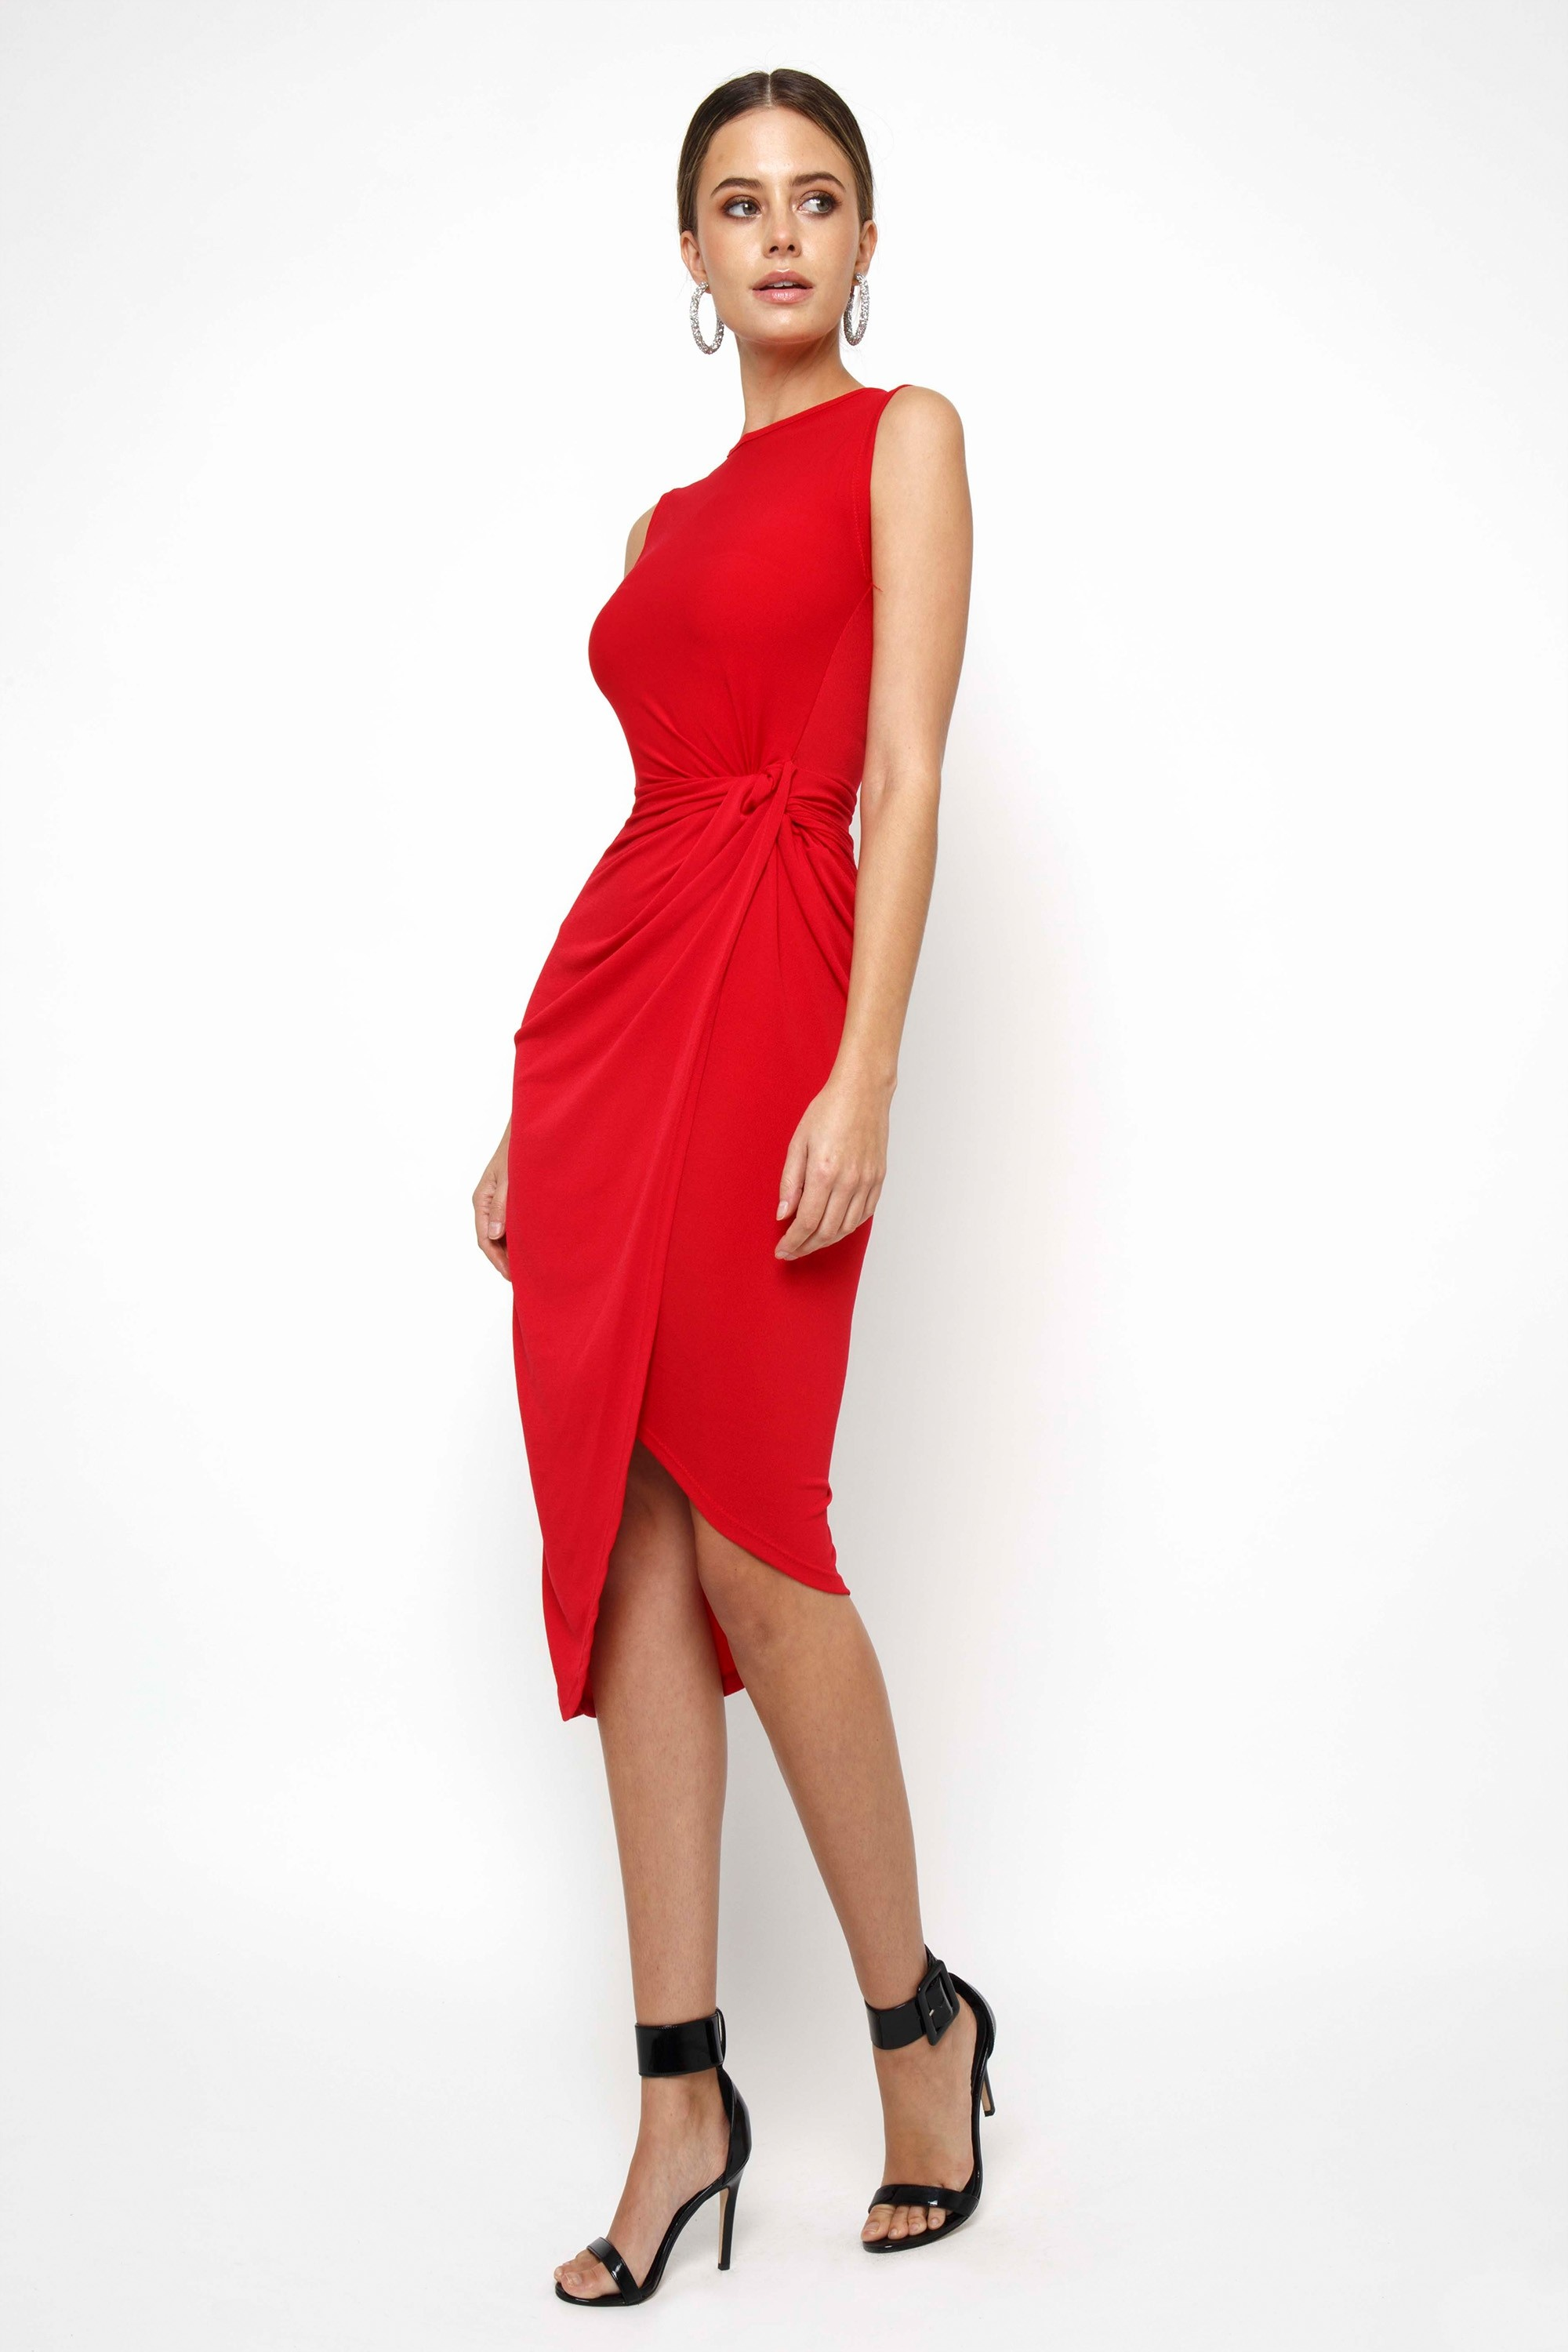 Walg Knot Tie Red Dress Walg Party Dresses